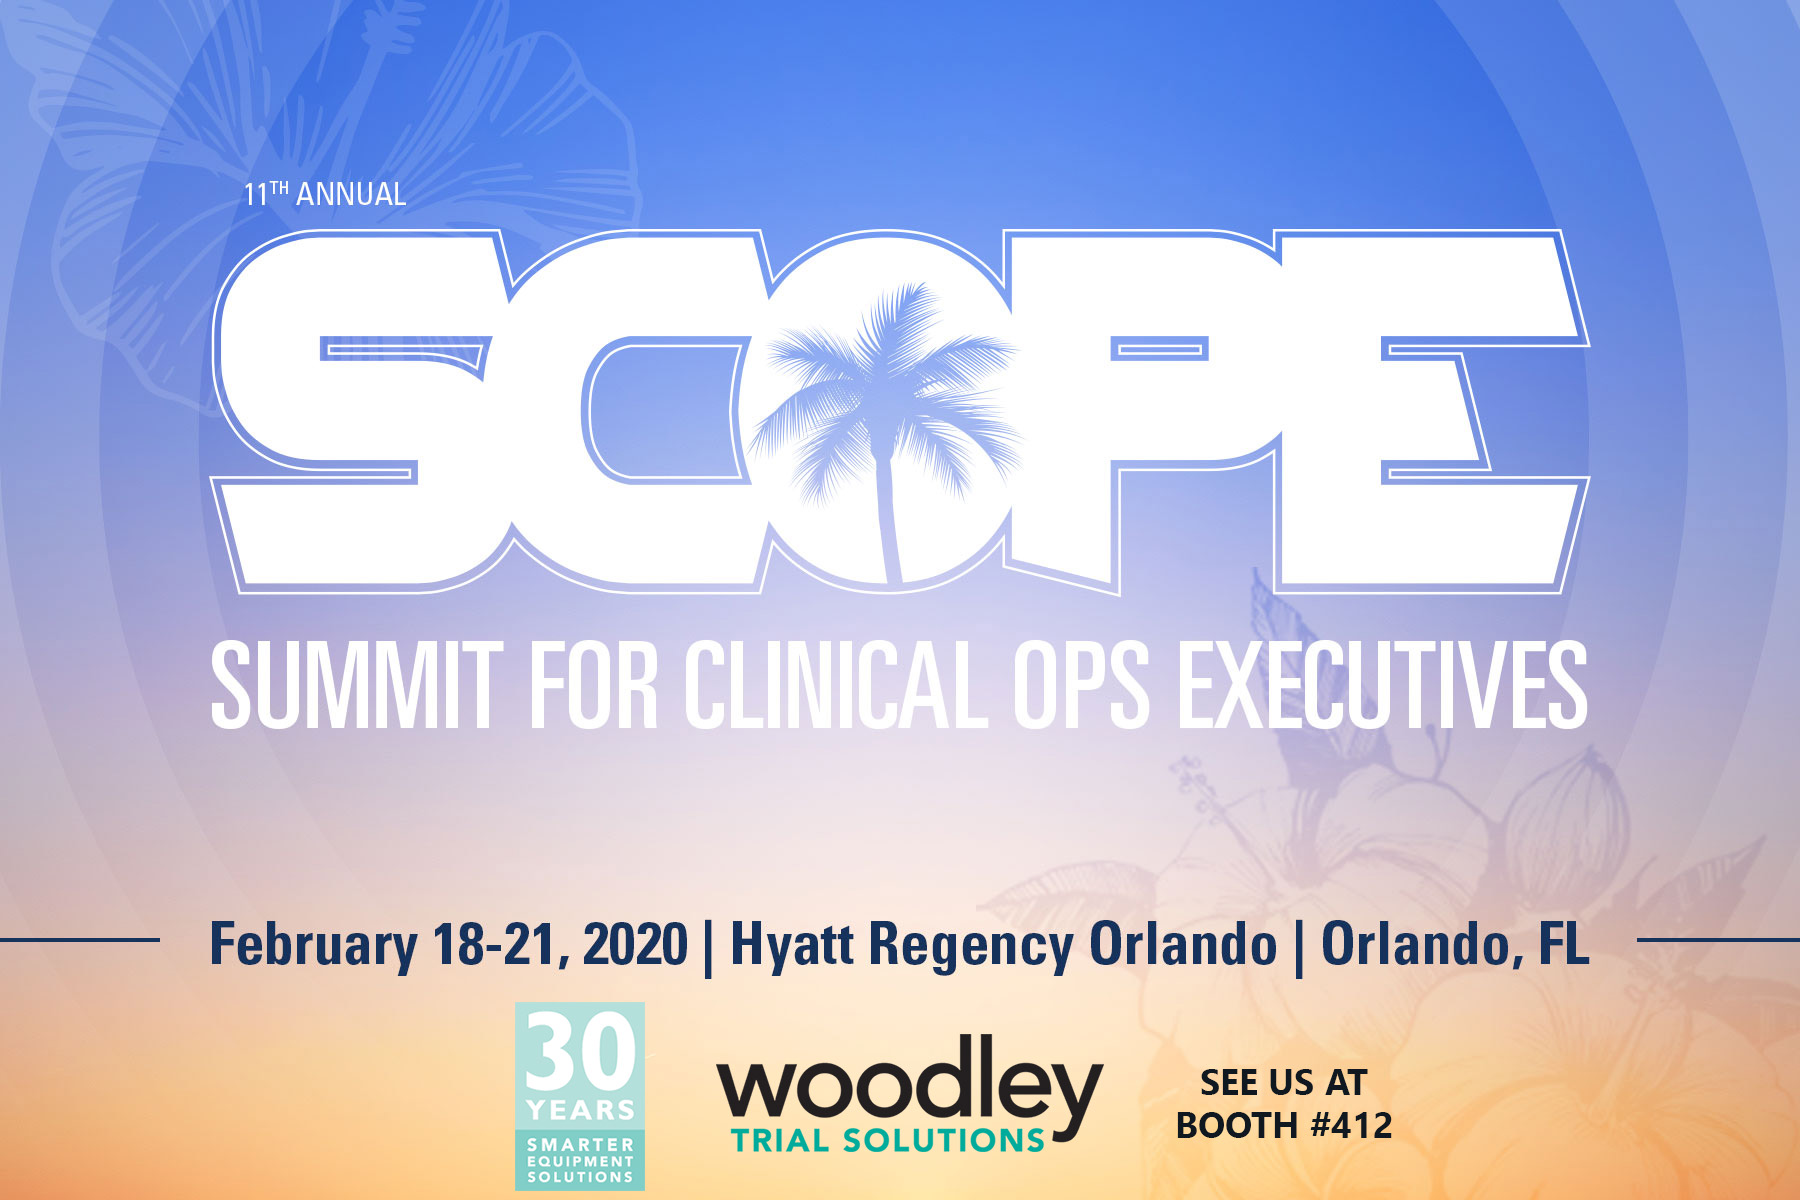 Woodley Trial Solutions will be at SCOPE Summit for Clinical Ops Executives